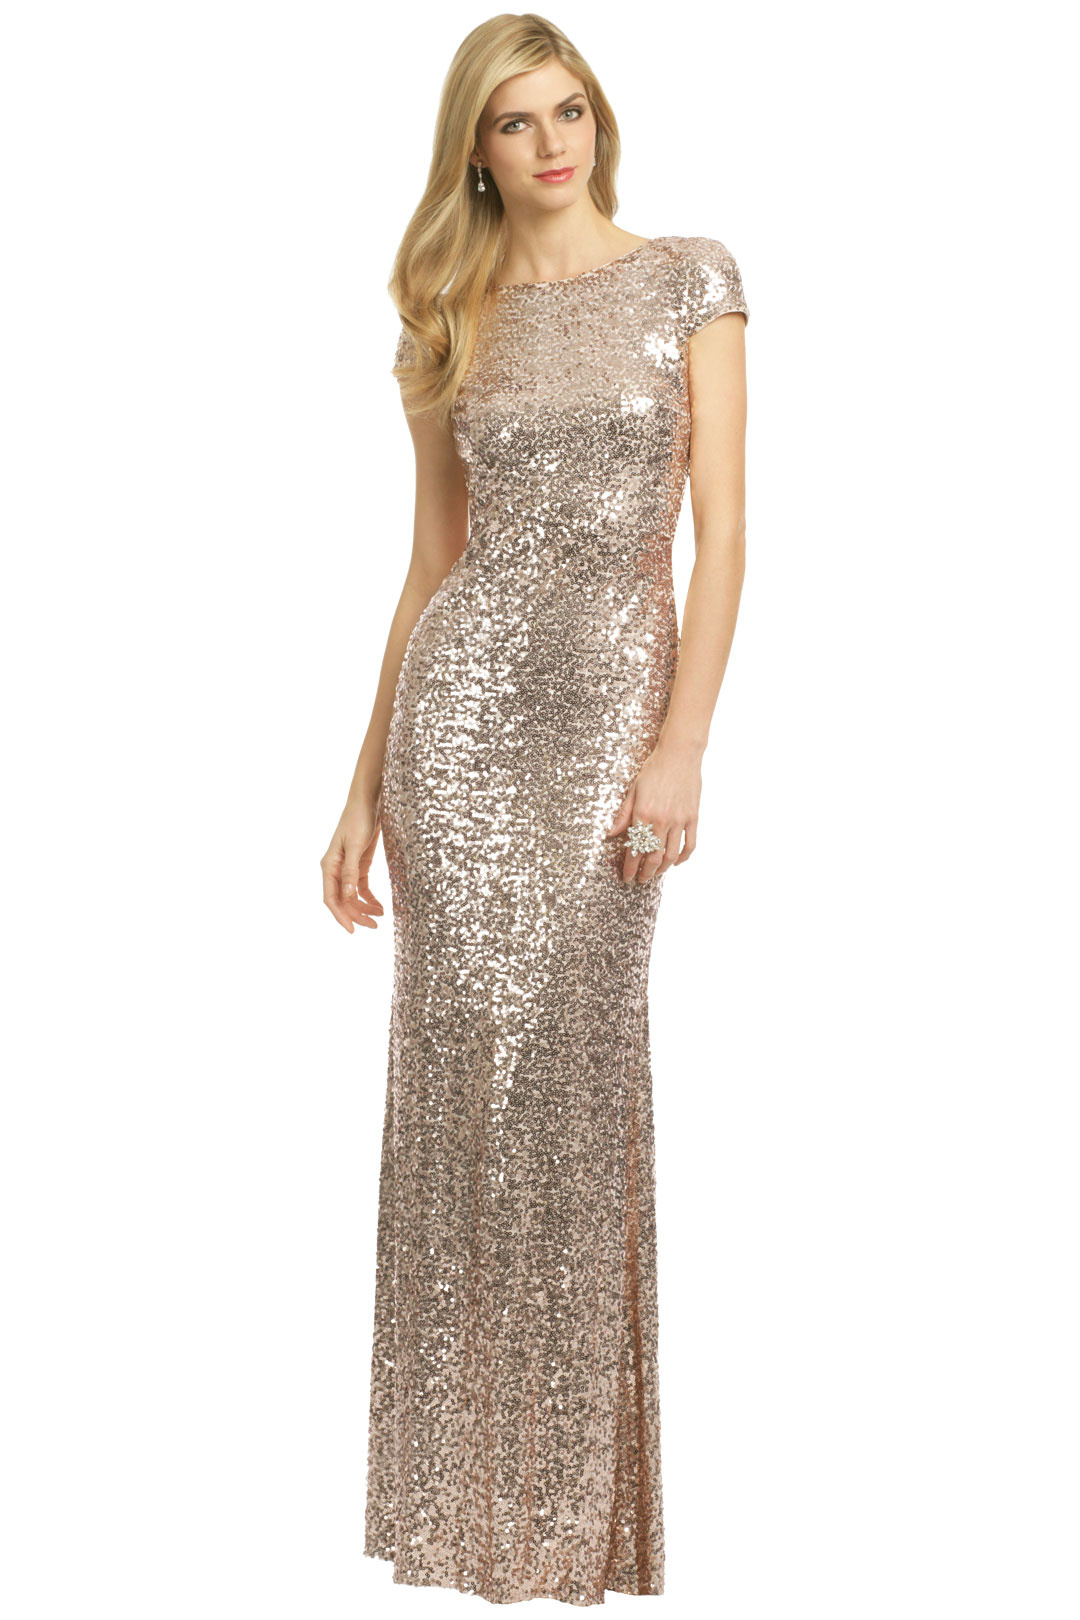 Glamorous Badgley Mischka Dresses for Parties